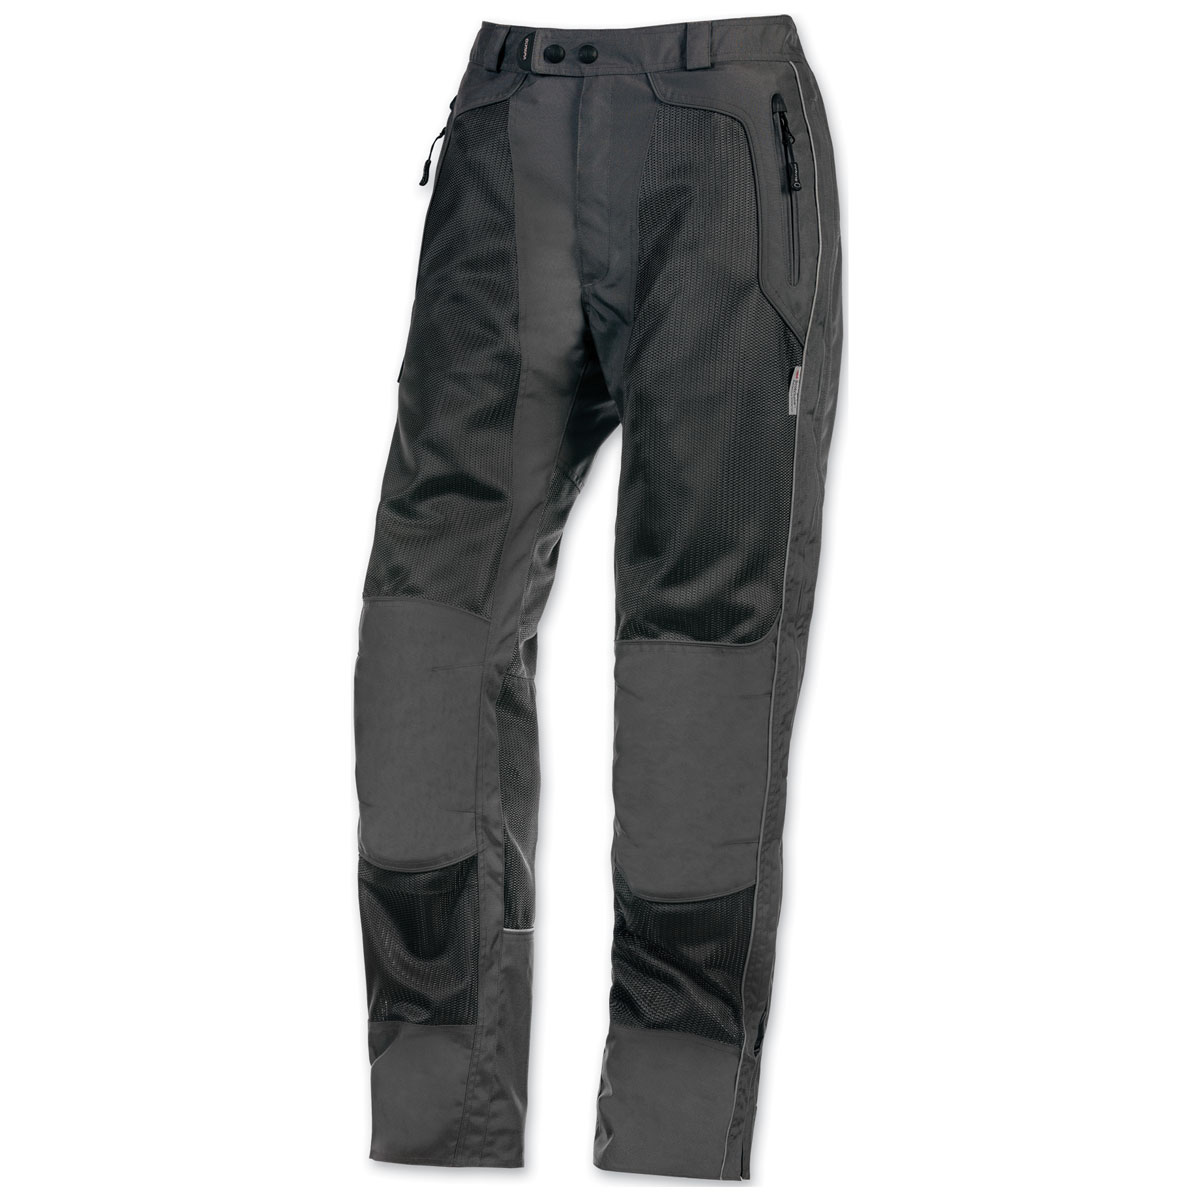 Olympia Moto Sports Men's Airglide 4 Mesh Tech Pewter Pants